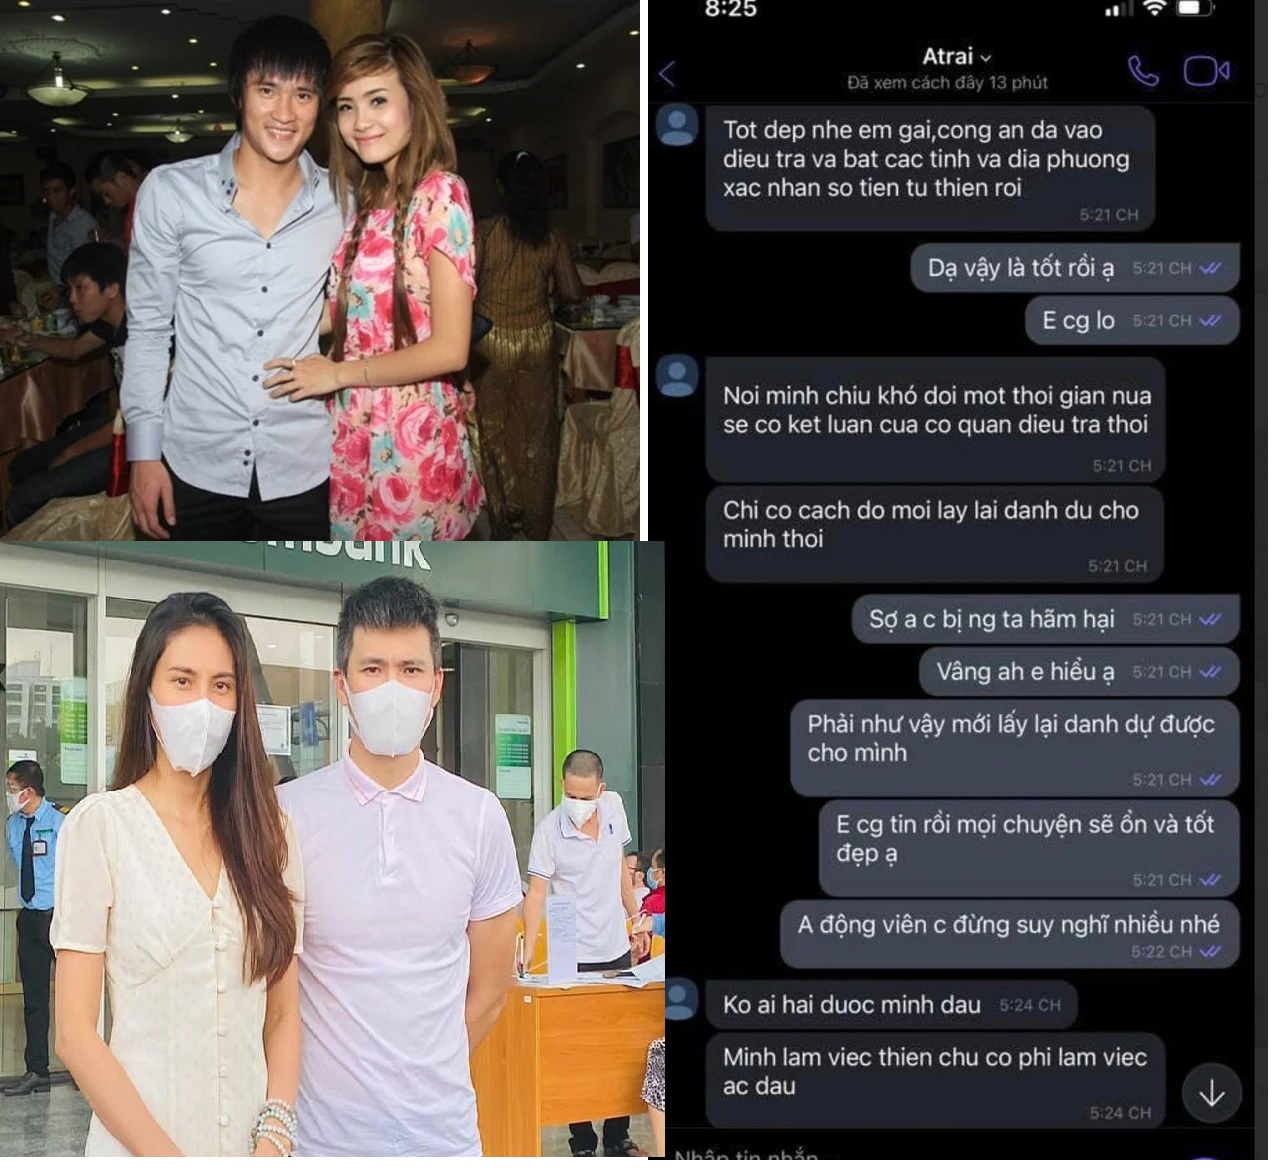 Hot news on October 9: Lawyer talked about Phuong Hang's 'statement dream';  Cong Vinh revealed the secret of charity money through text messages with his sister 4